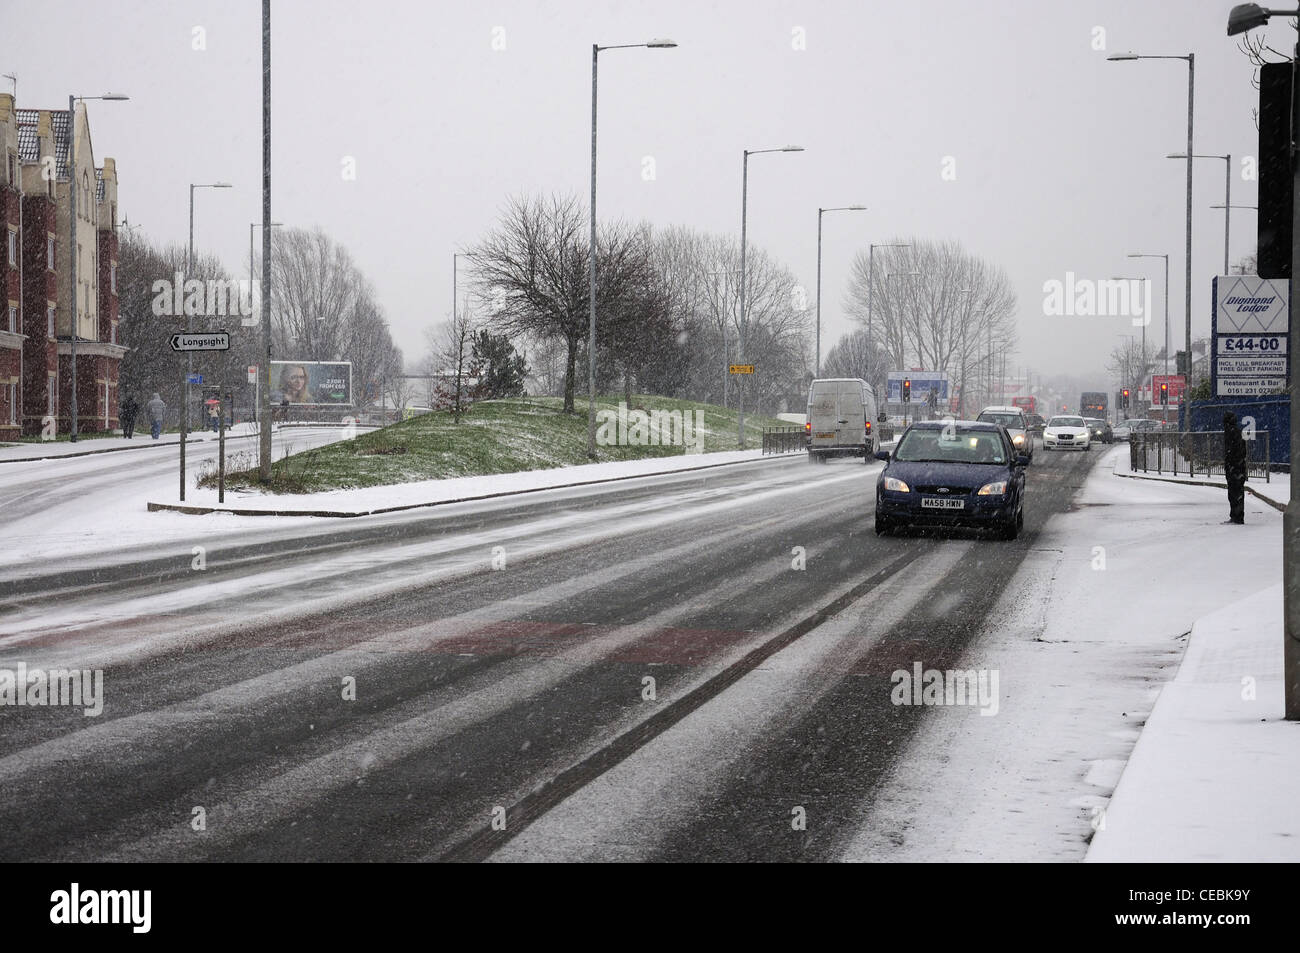 Cars and people in snowfall along Hyde Road - looking towards Reddish - Stock Image